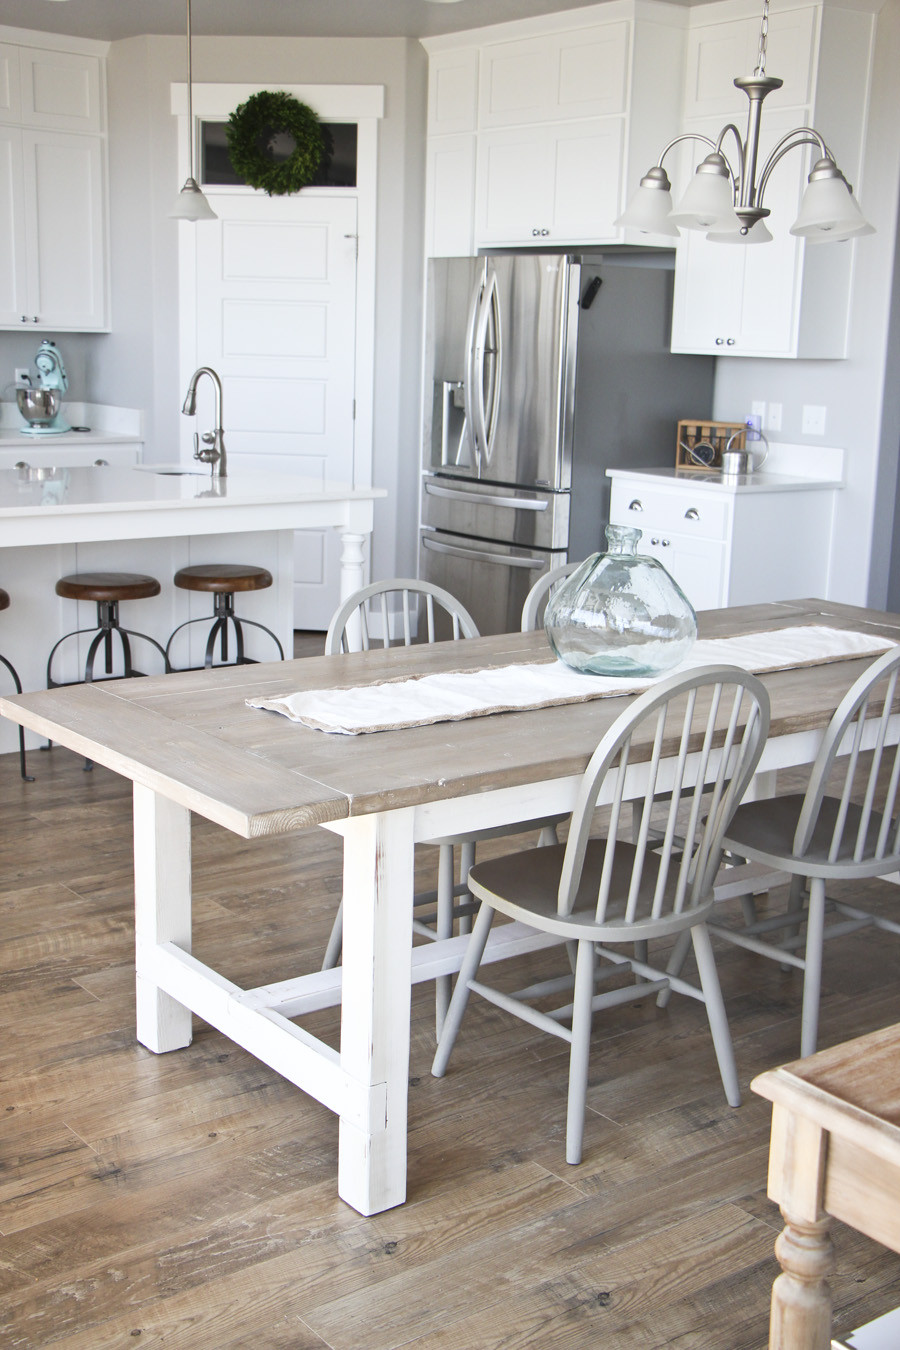 Best ideas about DIY Farmhouse Bench . Save or Pin DIY Farmhouse Table and Bench HoneyBear Lane Now.